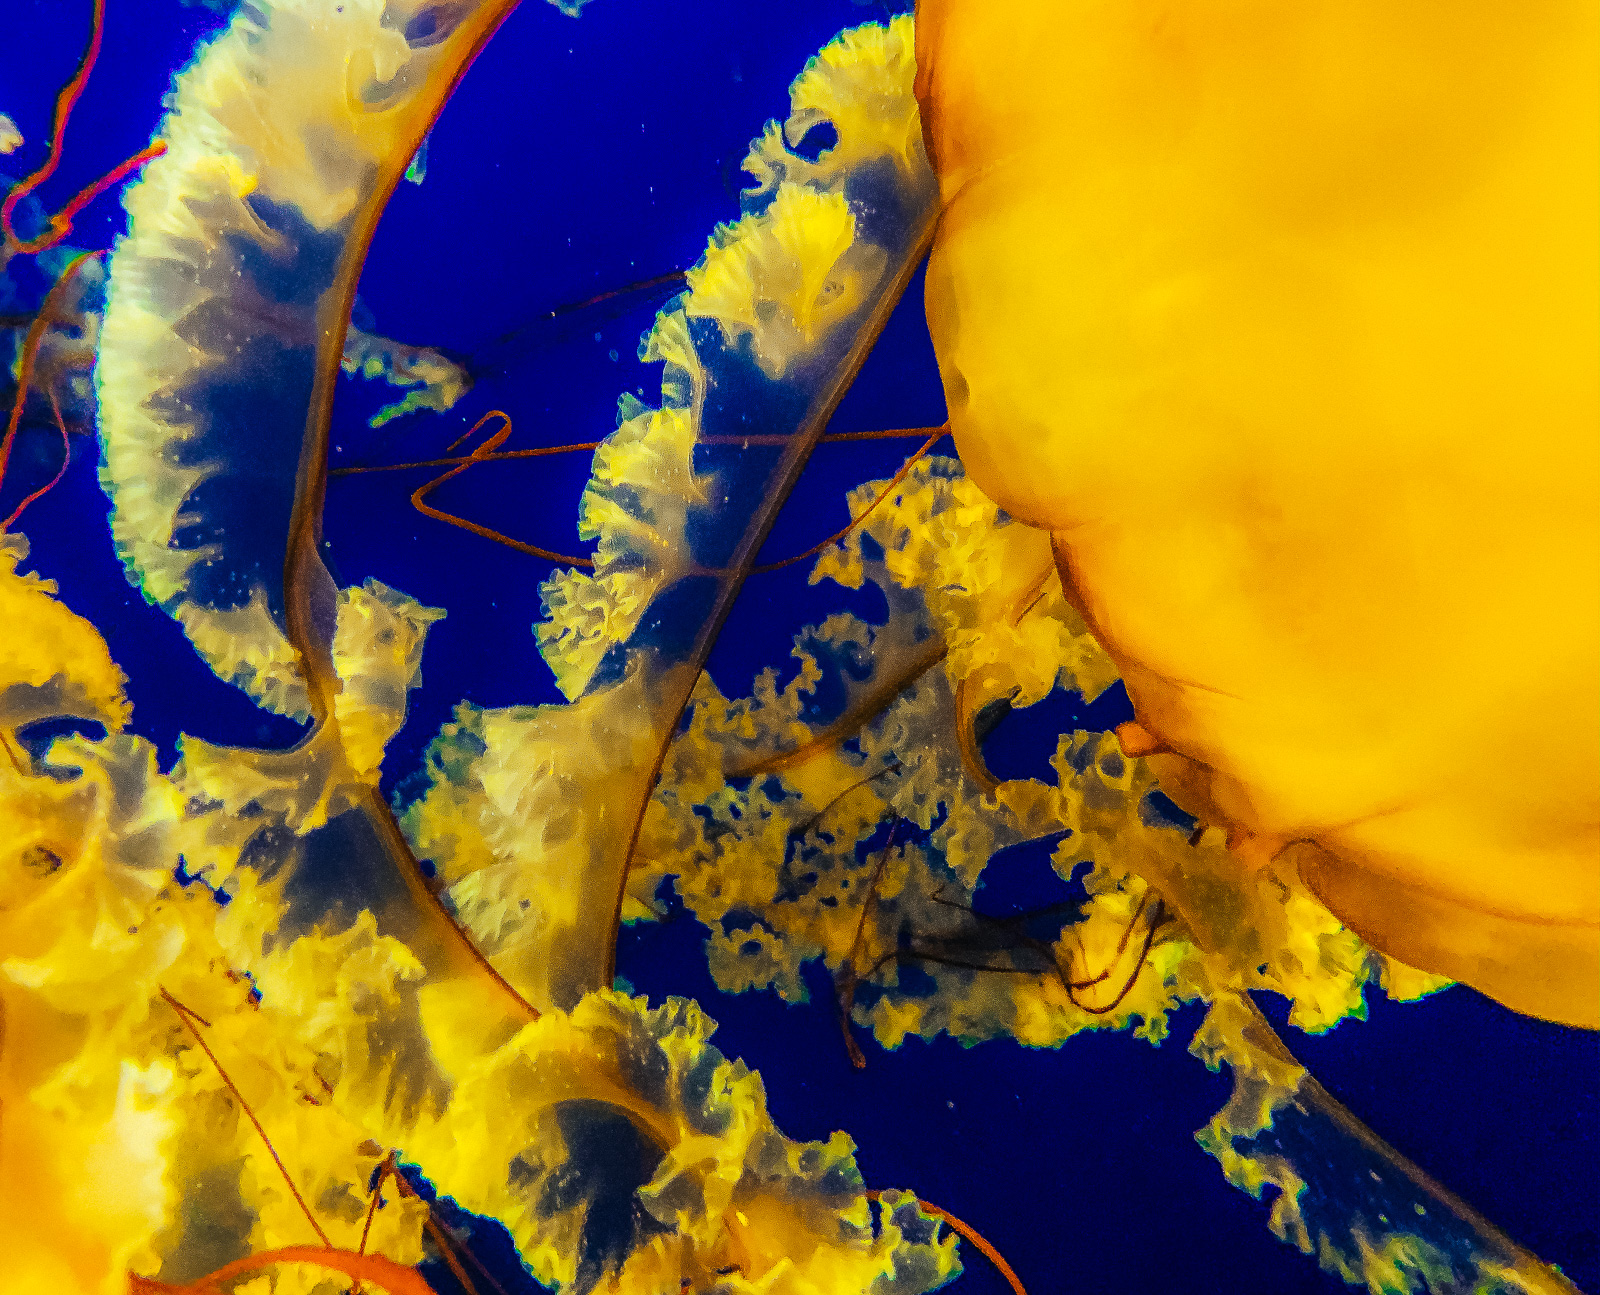 hedy bach images - jellyfish - c